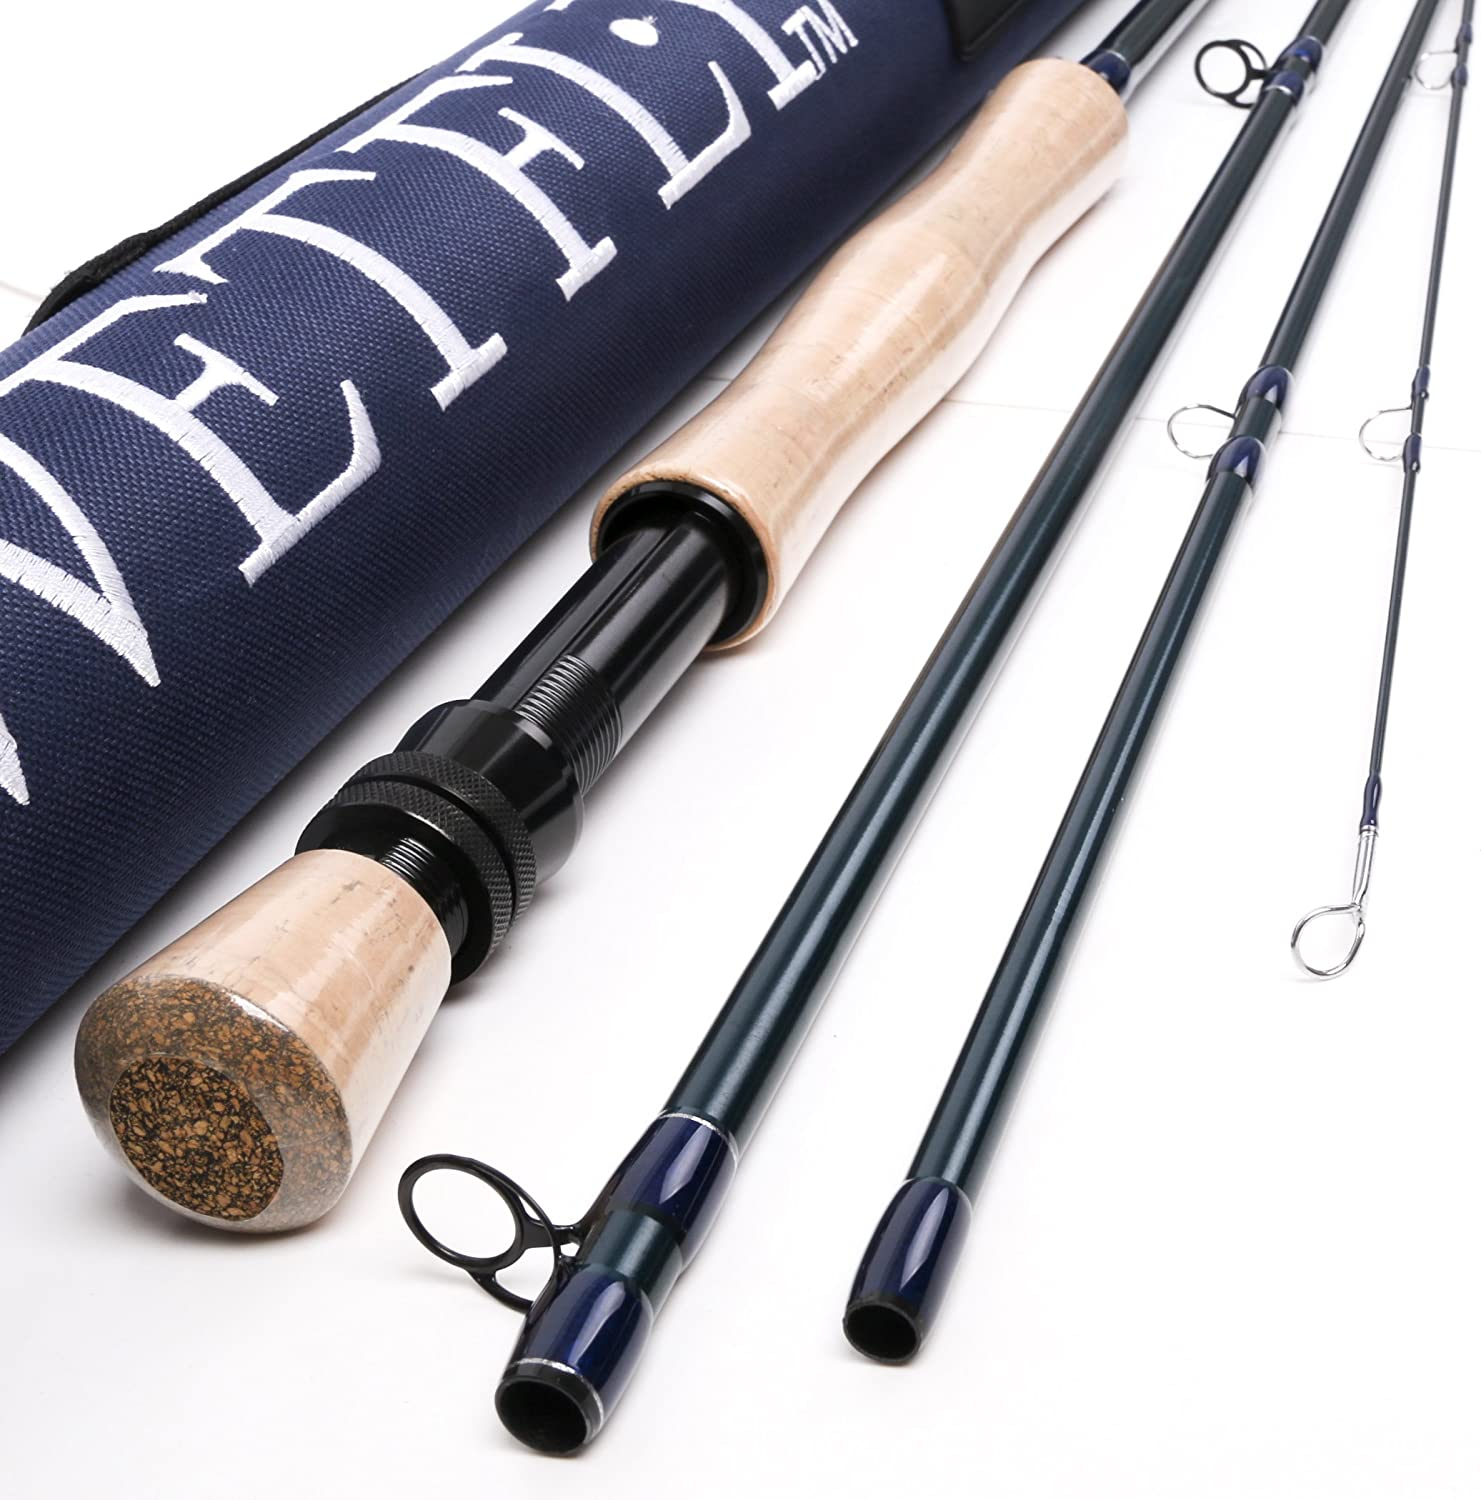 Wetfly Element2 4piece Fly Fishing Rods (9' 7wt)